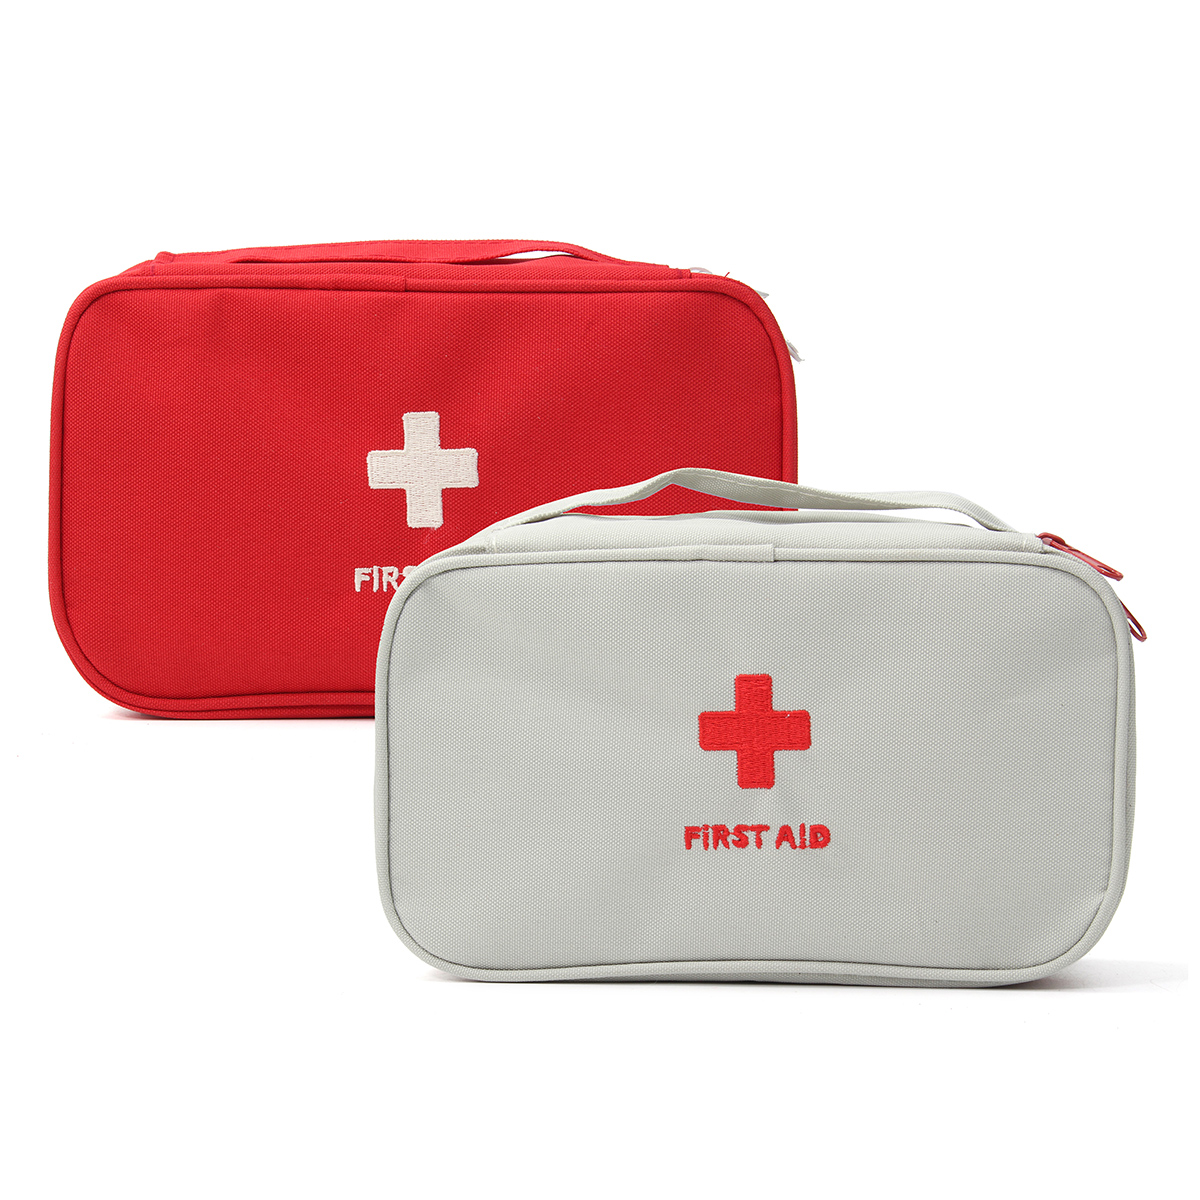 First Aid Bag Details Pictures